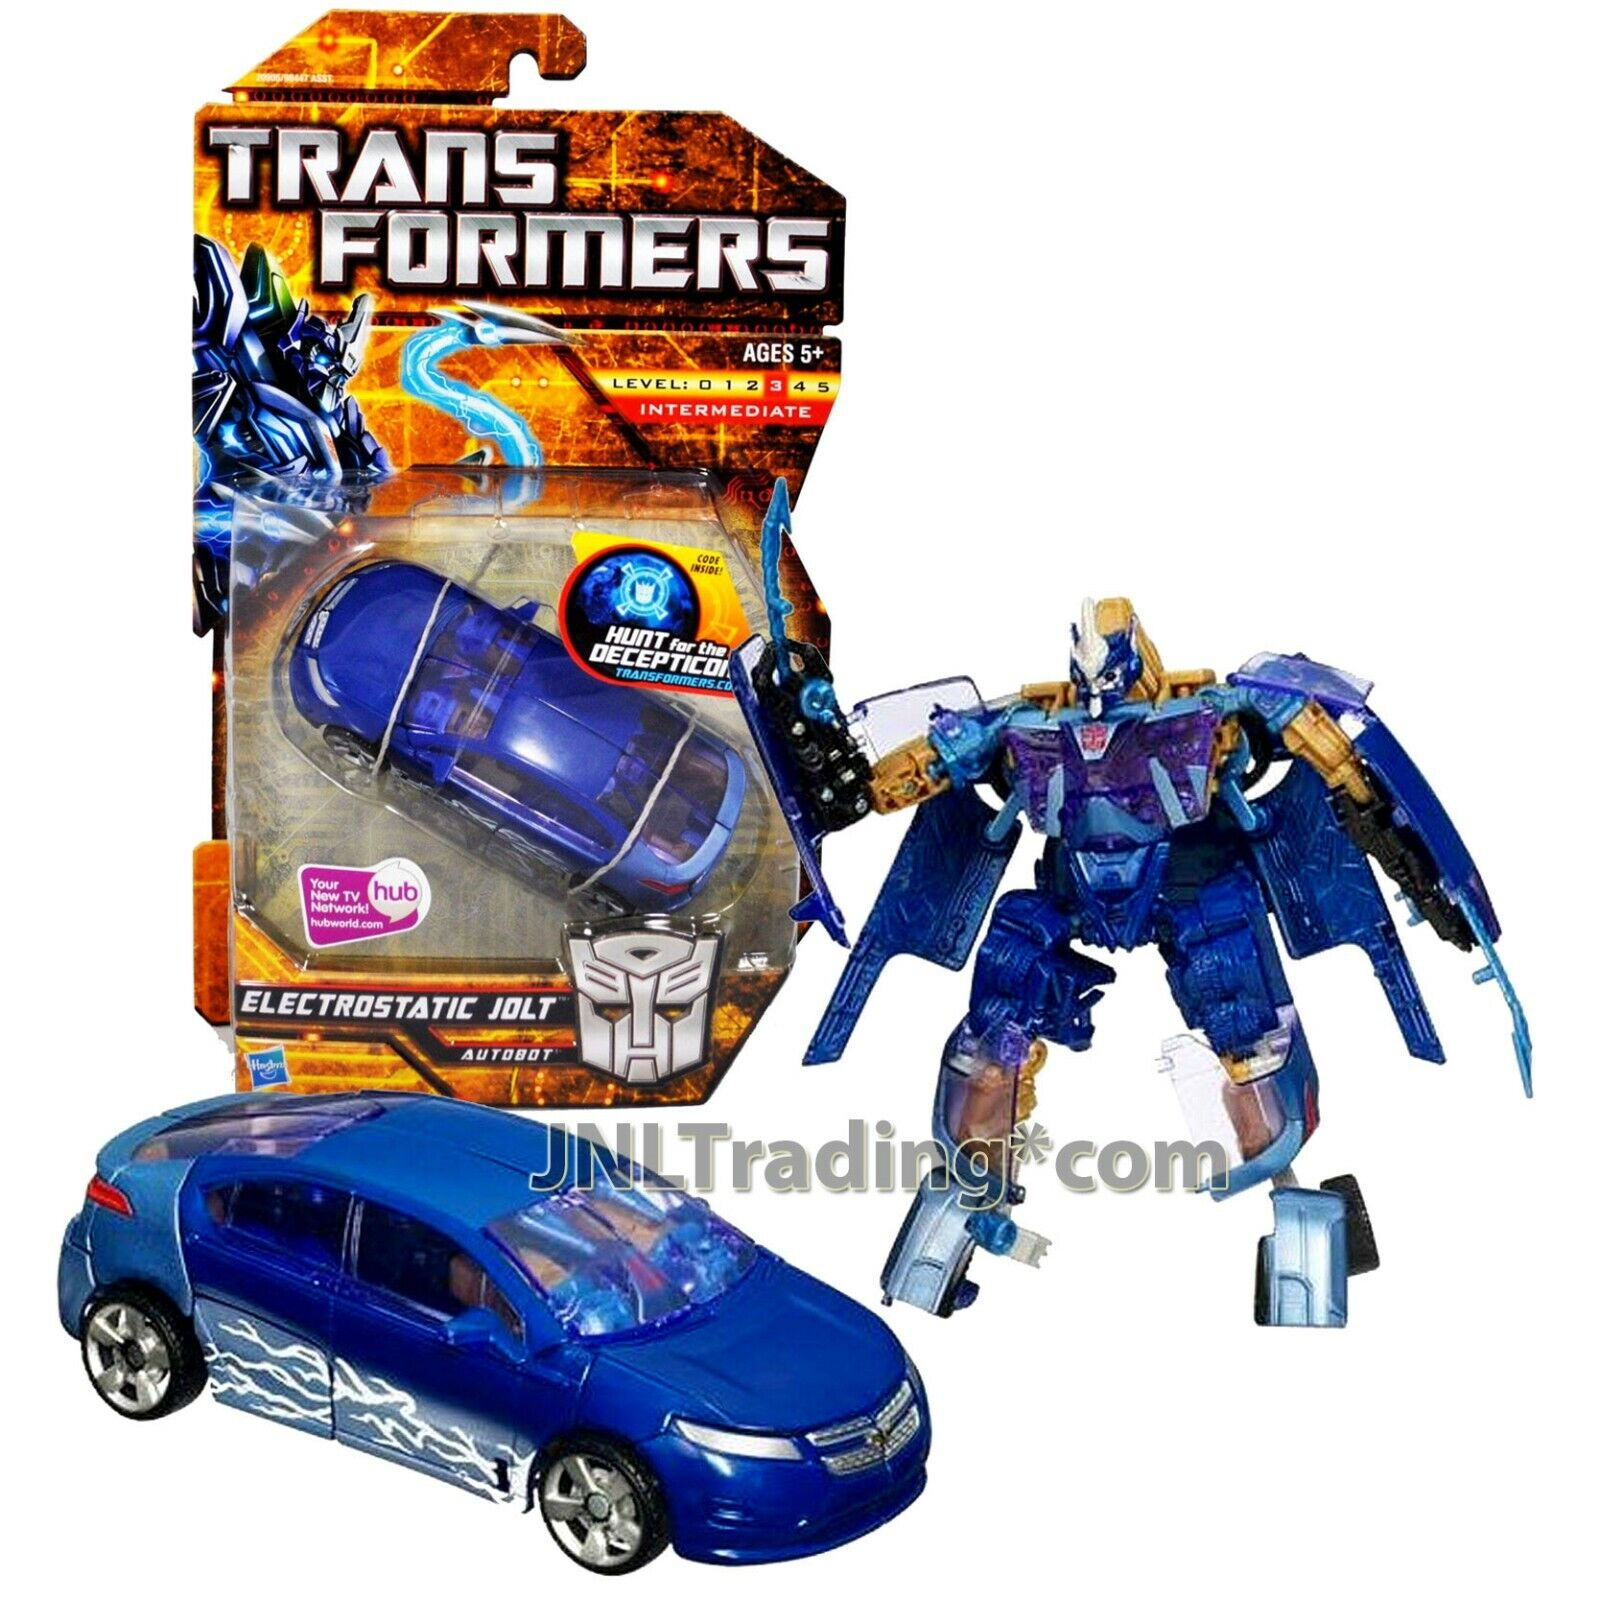 2010 Transformers Hunt for the Decepticons Deluxe classe 6 ELECTROSTATIC JOLT